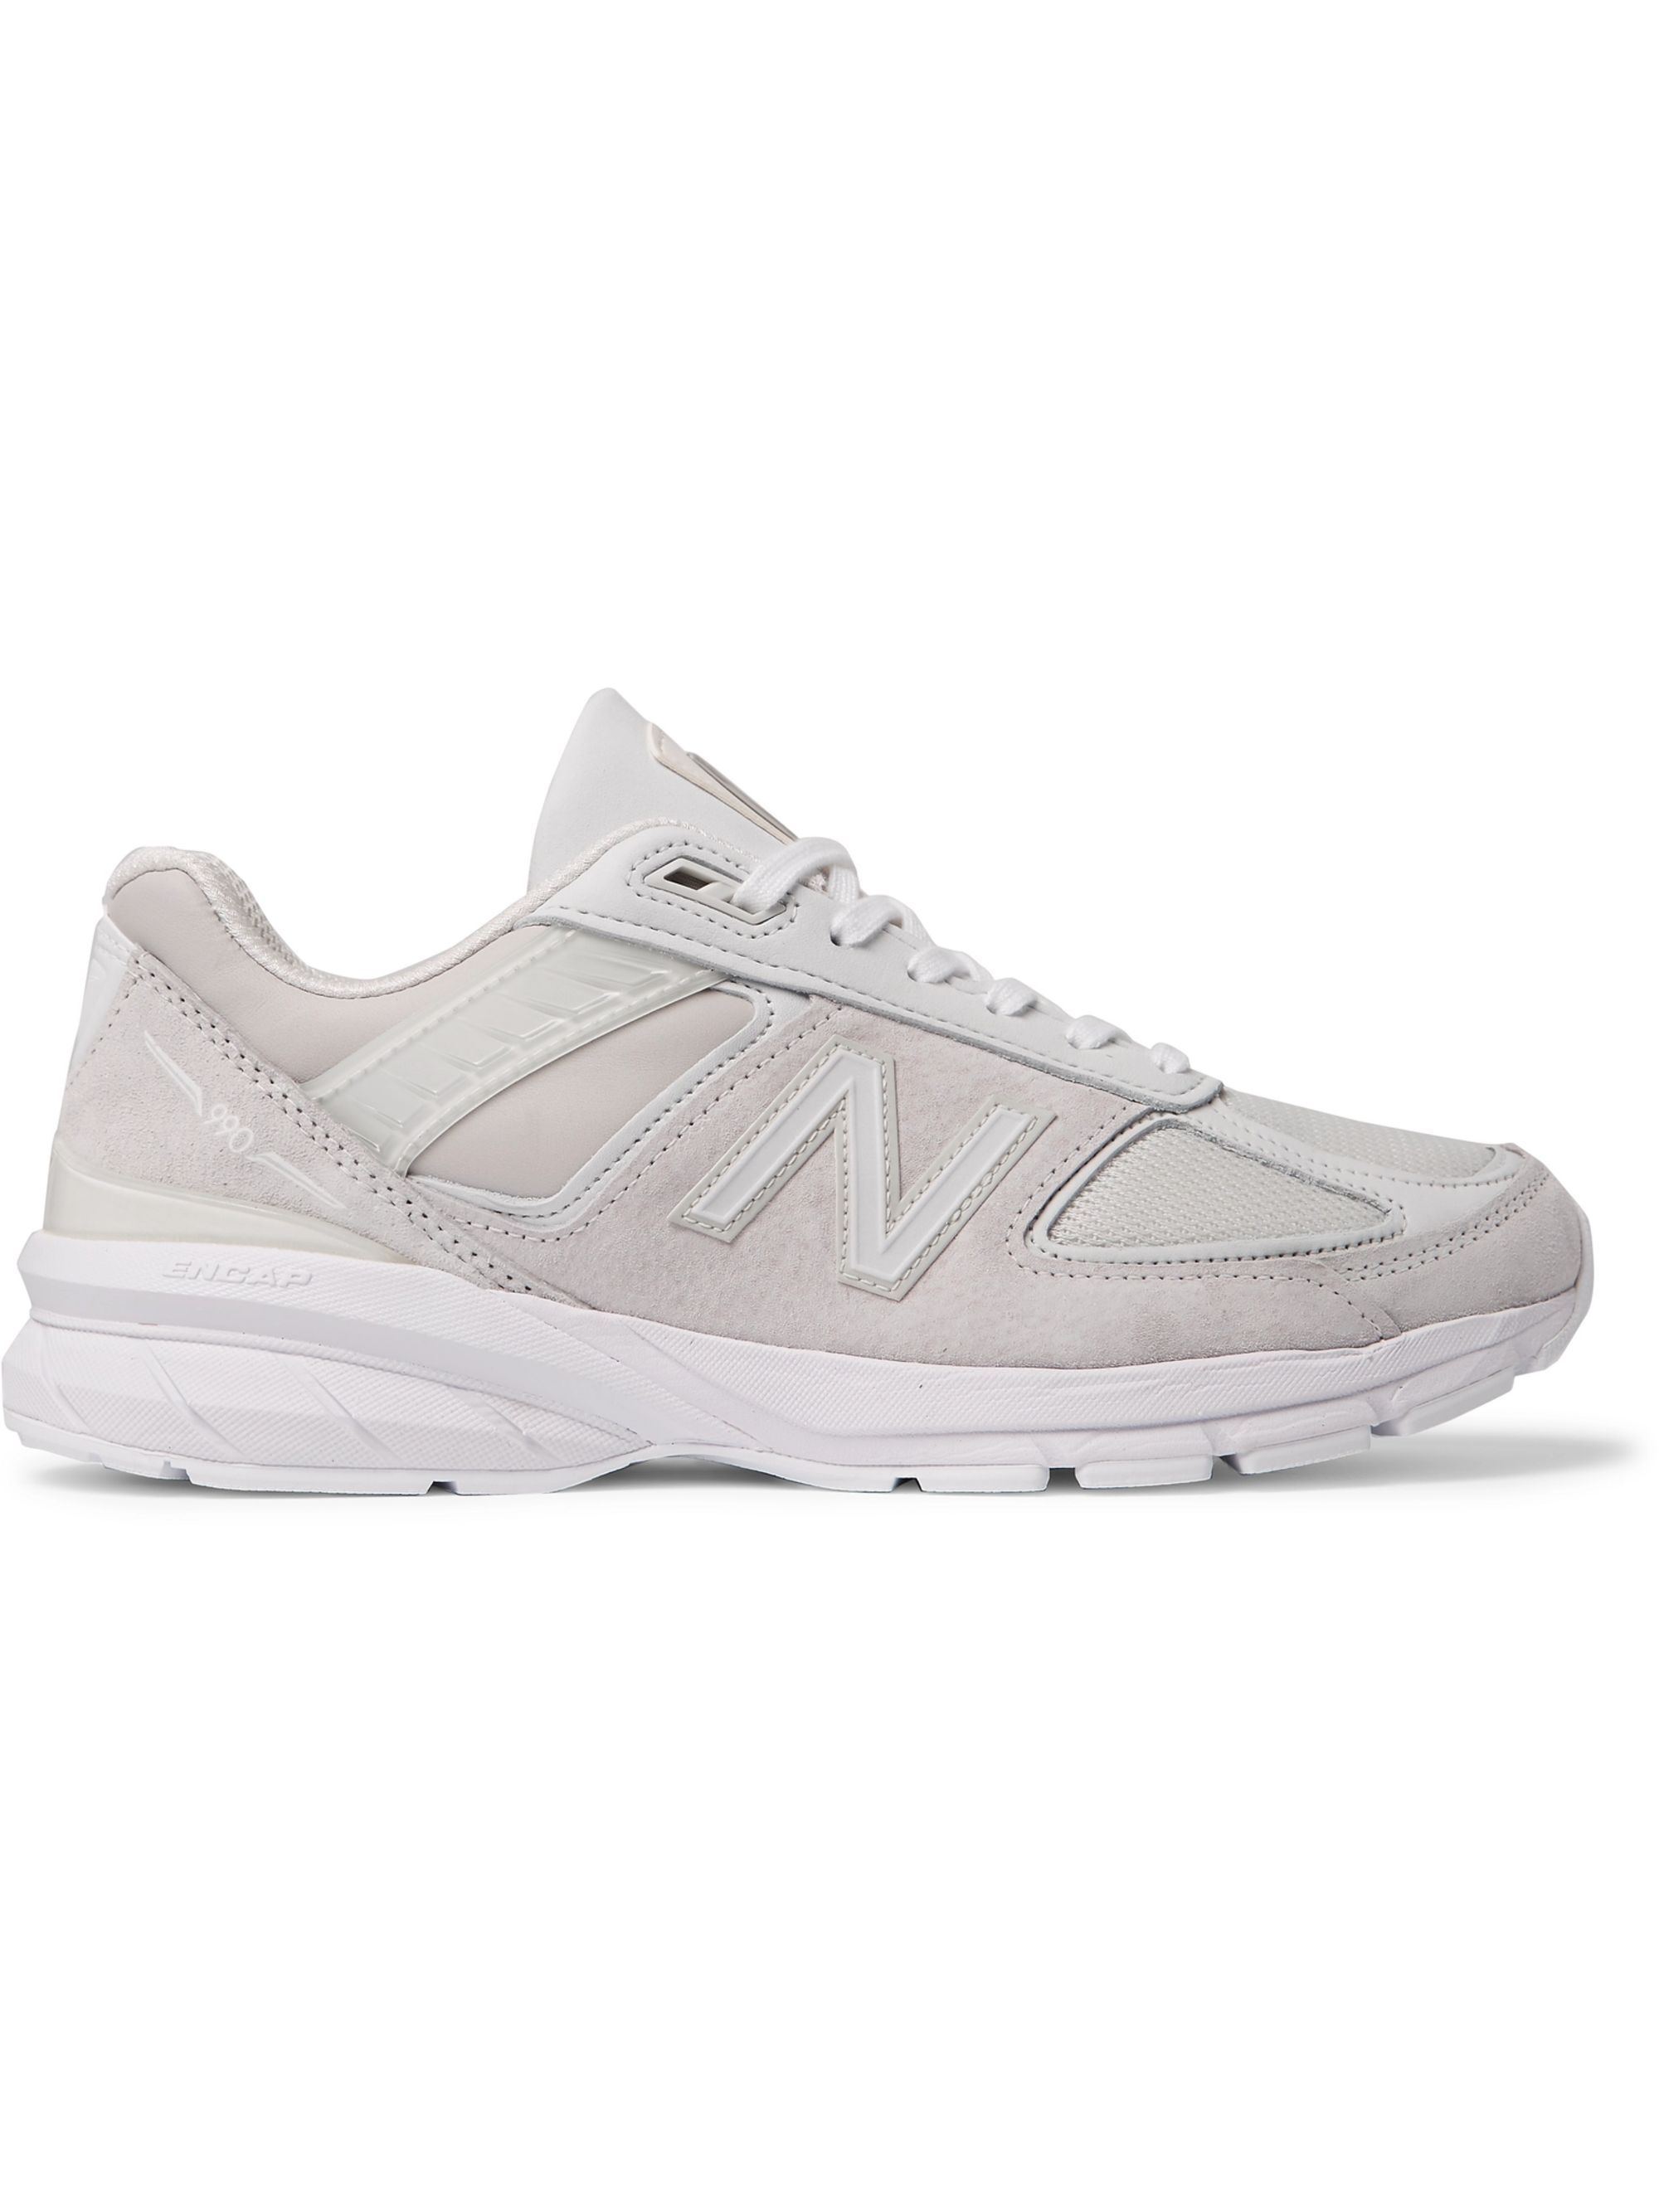 Junya Watanabe + New Balance 990 V5 Suede and Mesh Sneakers